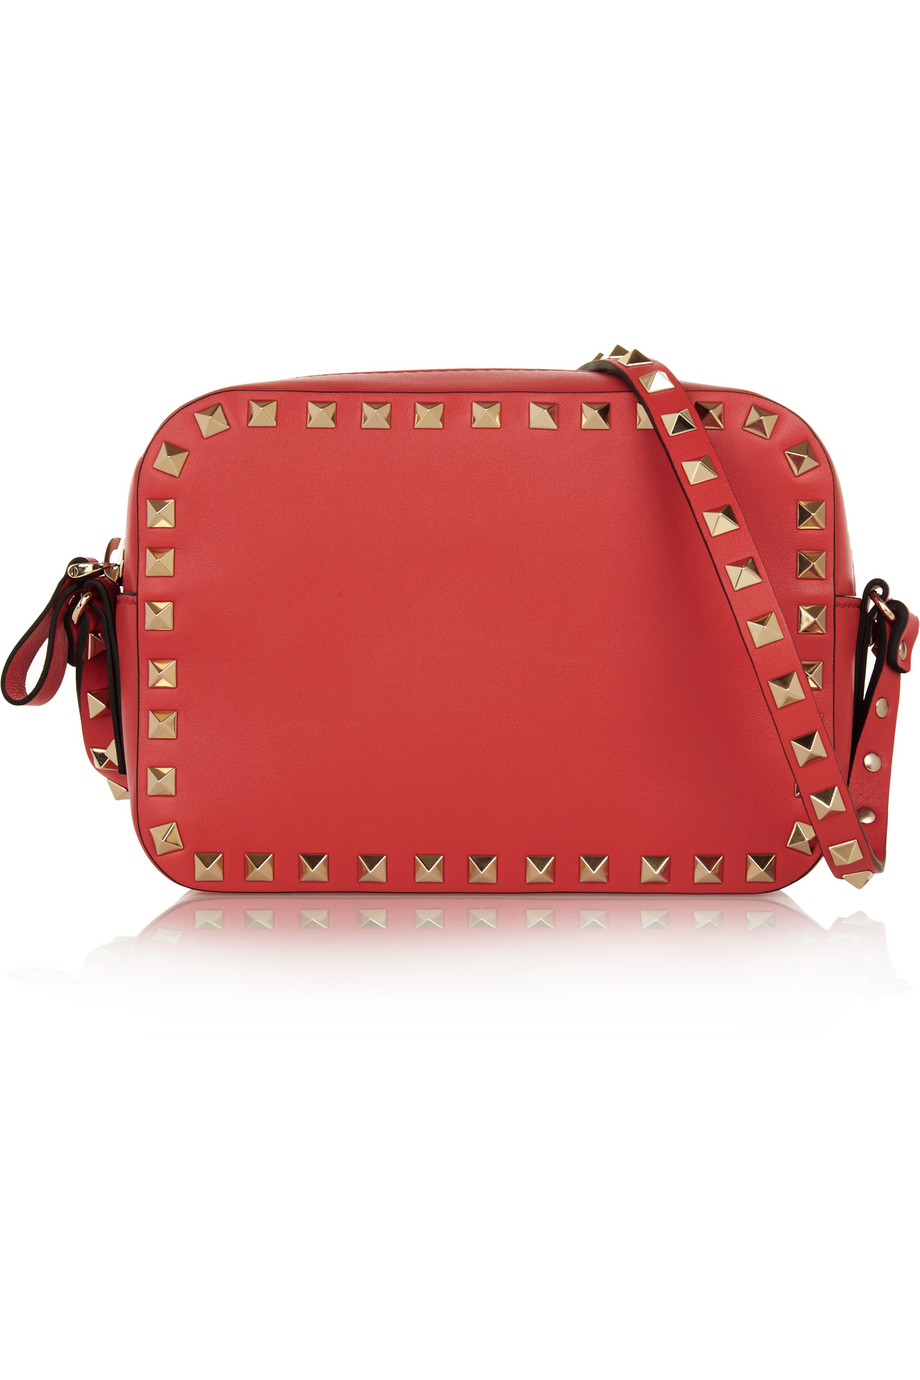 Valentino The Rockstud Leather Shoulder Bag, Coral, Women's, Size: One Size